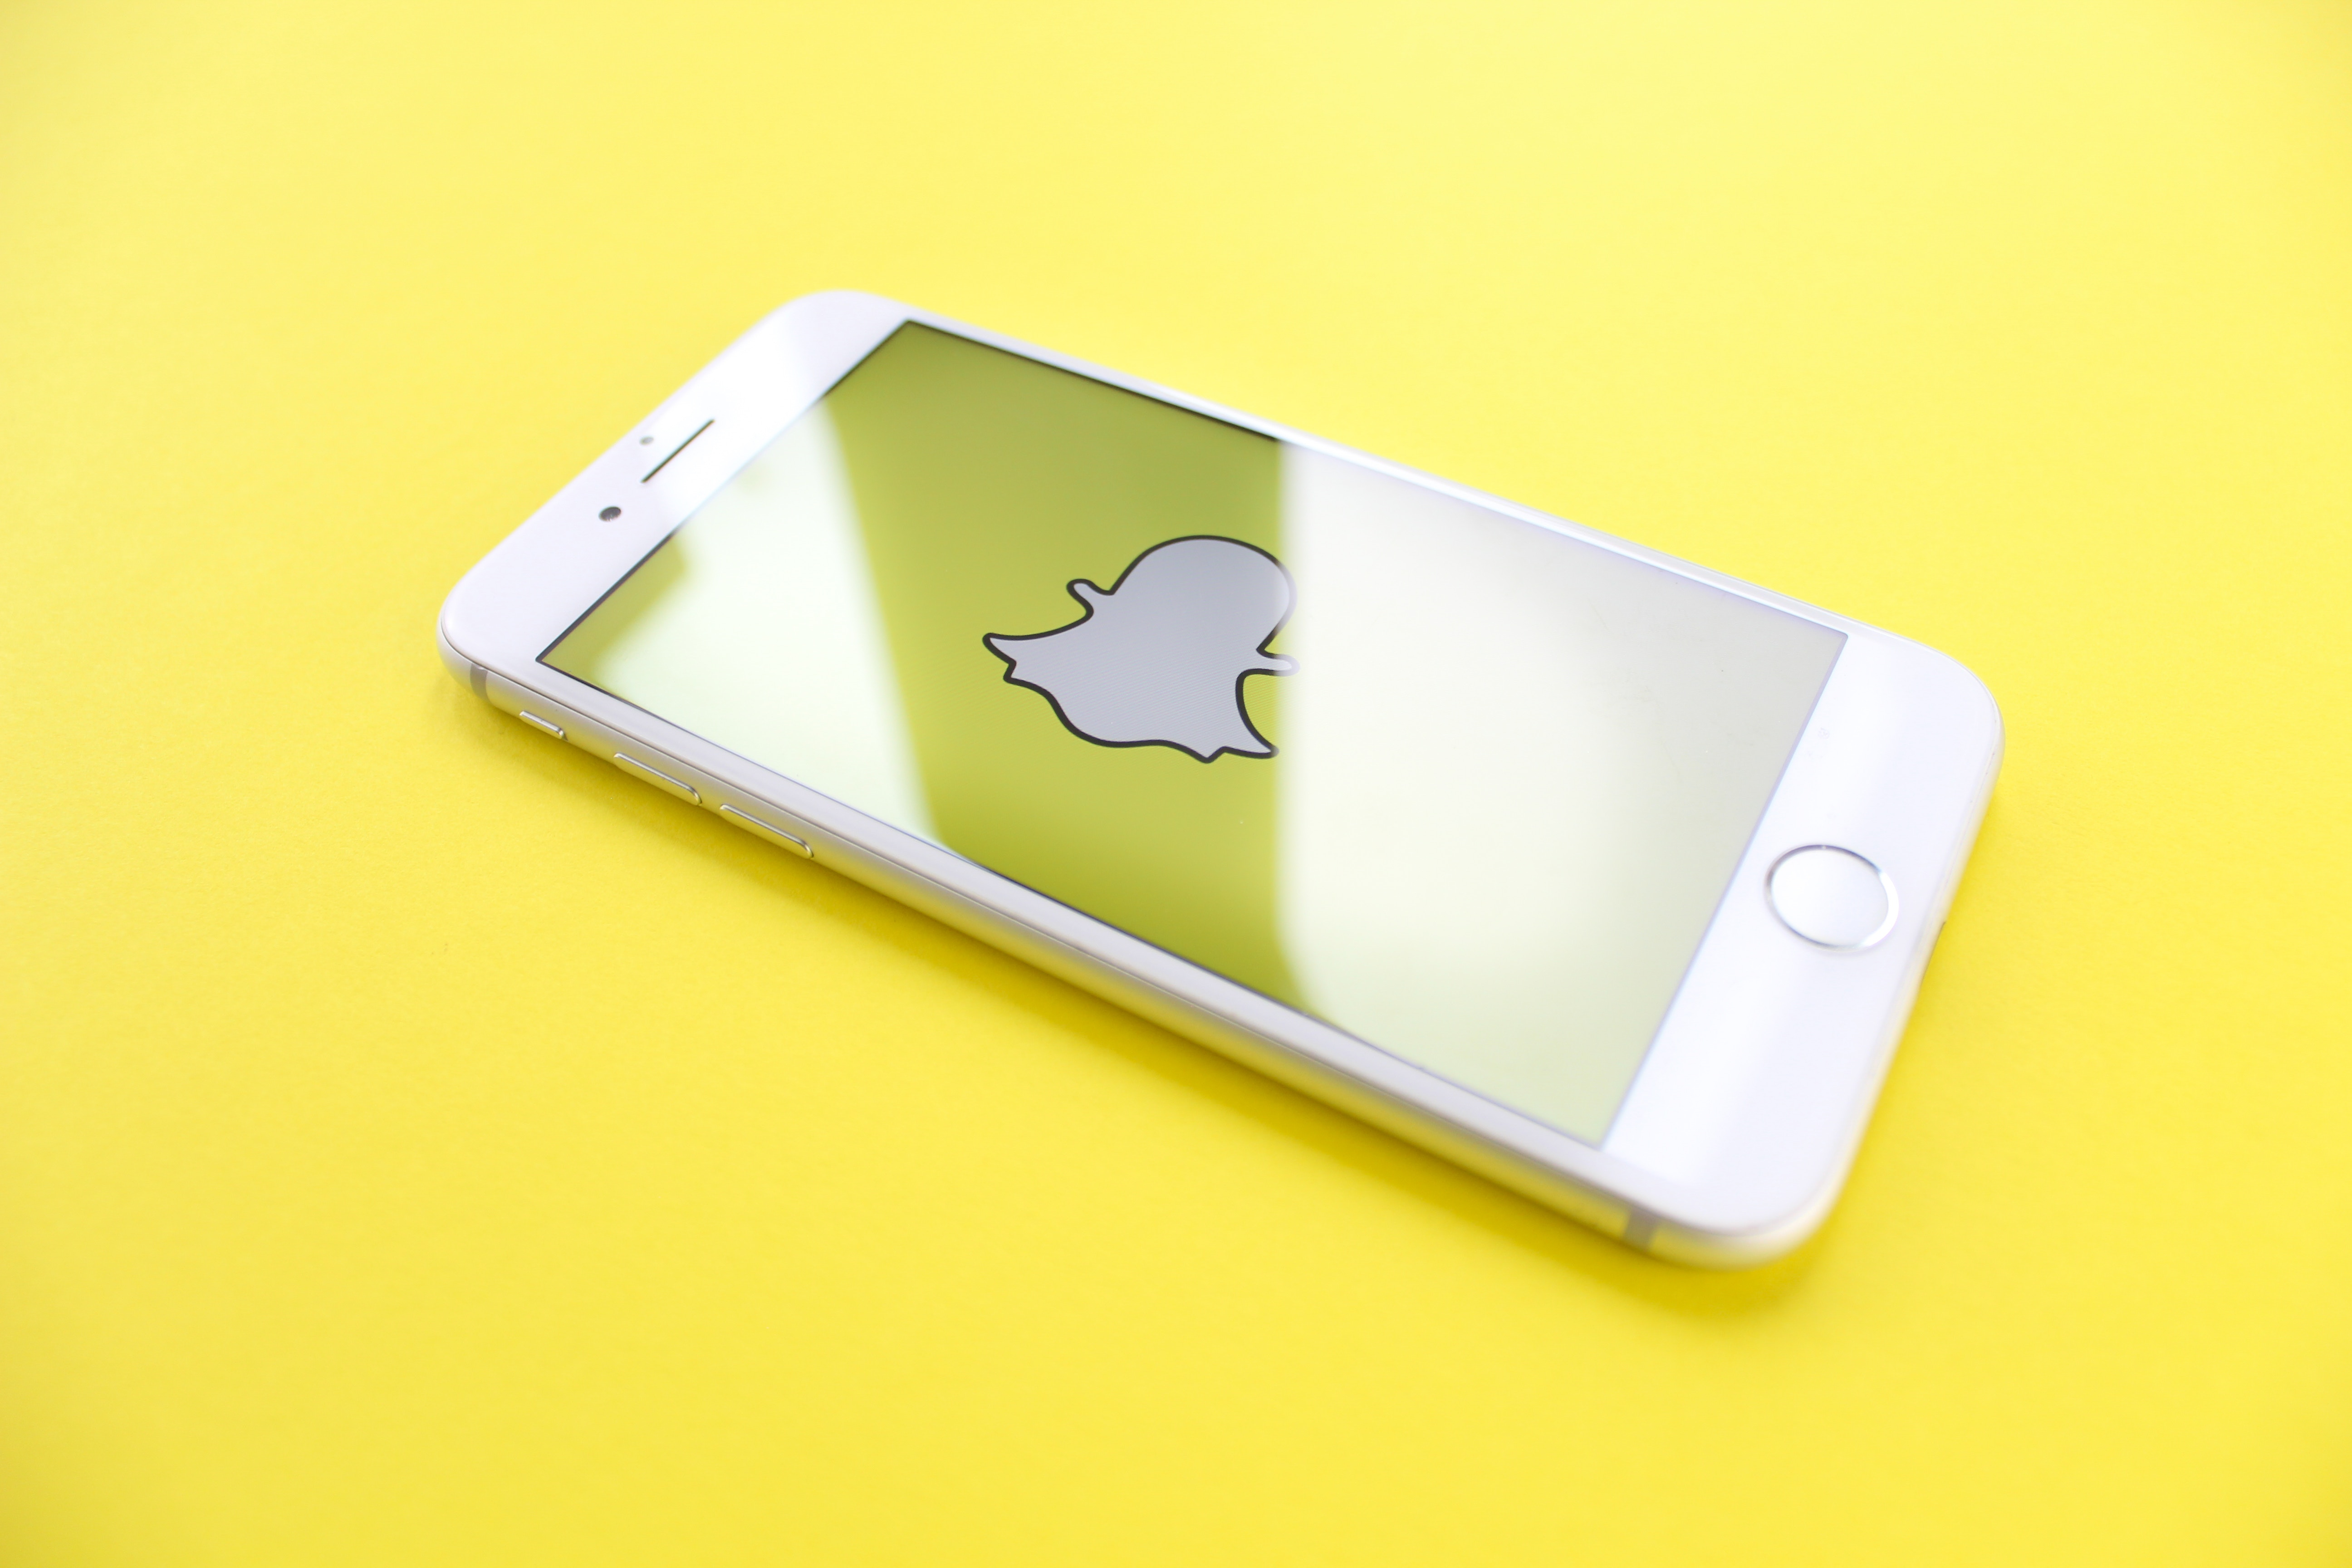 iphone-on-yellow-surface-2228569.jpg